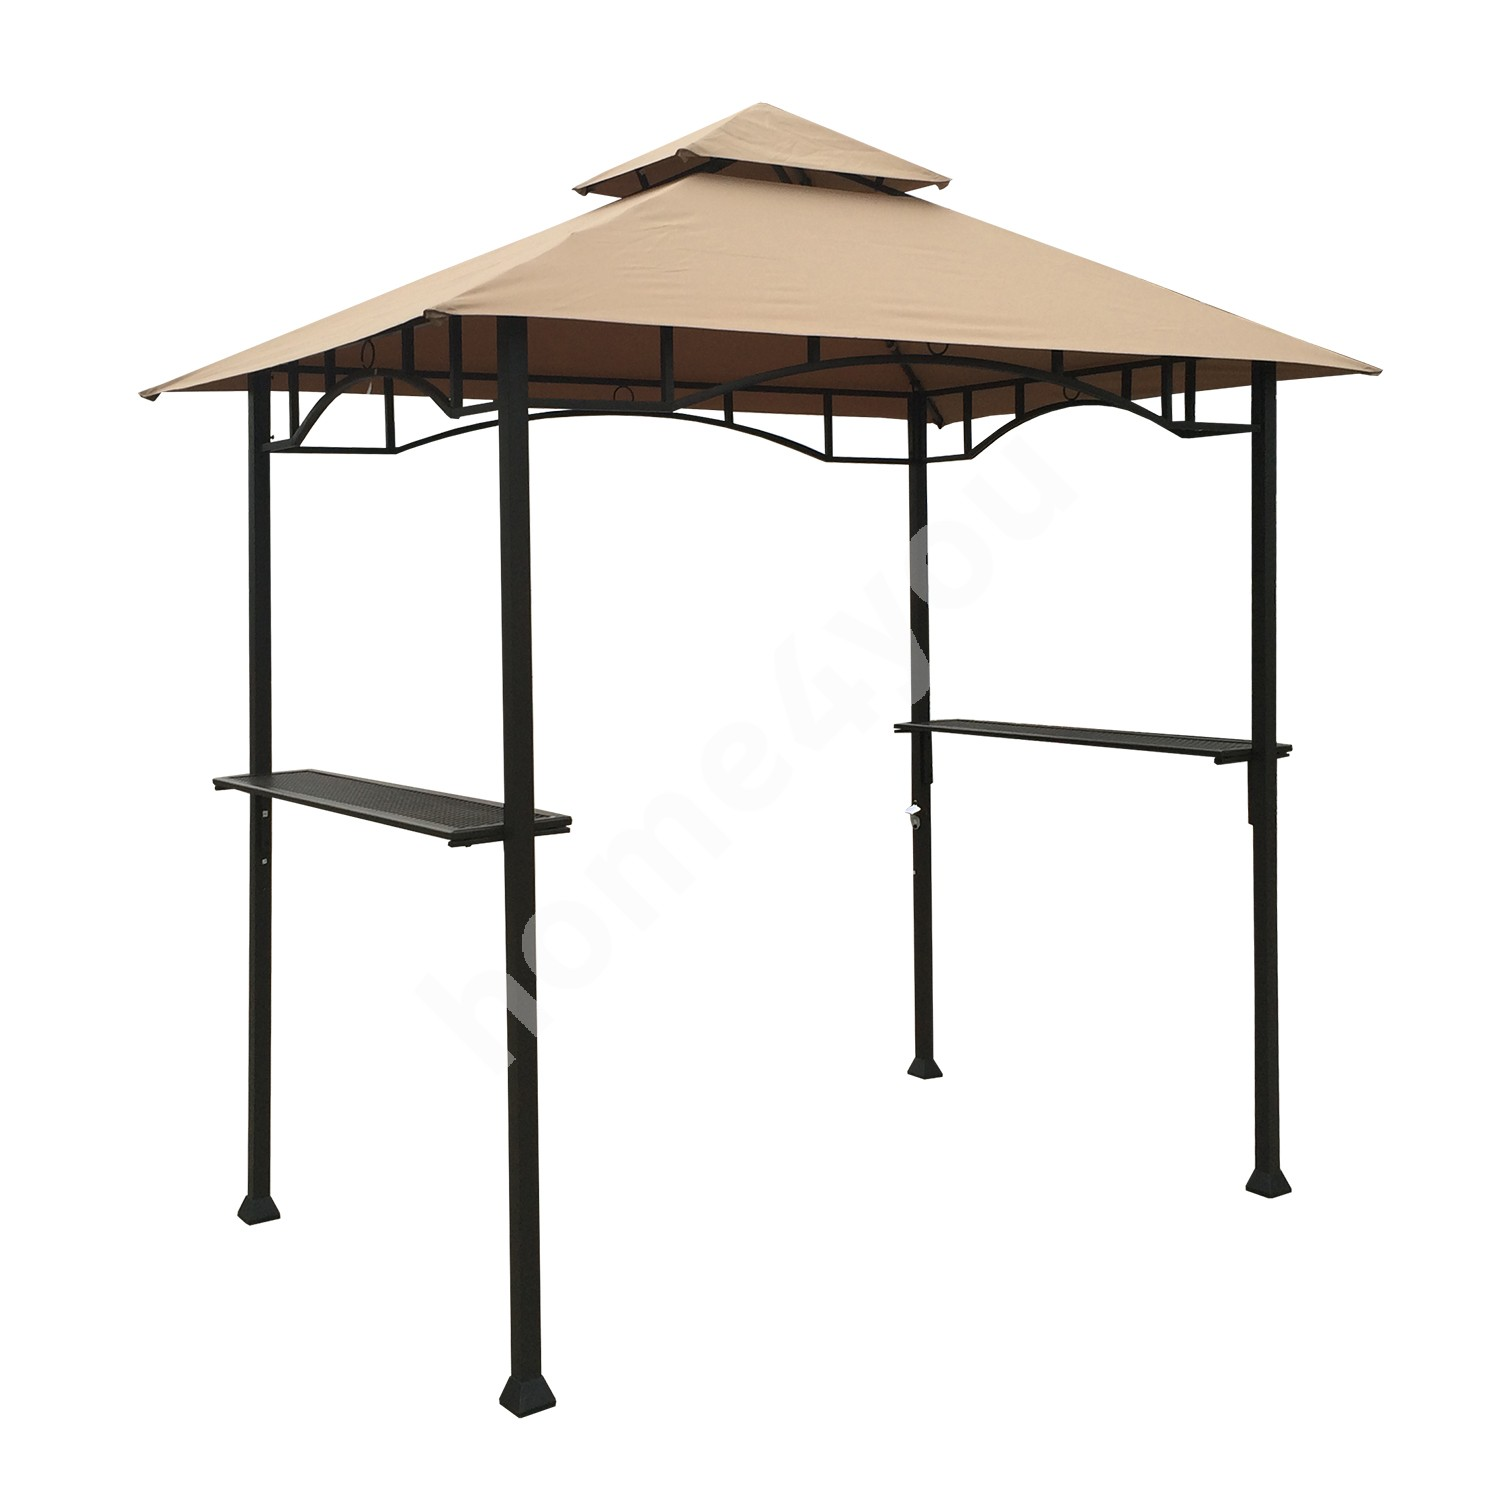 Gazebo BBQ 2,4x1,5m steel frame, color: dark brown, cover: polyester fabric, color: beige